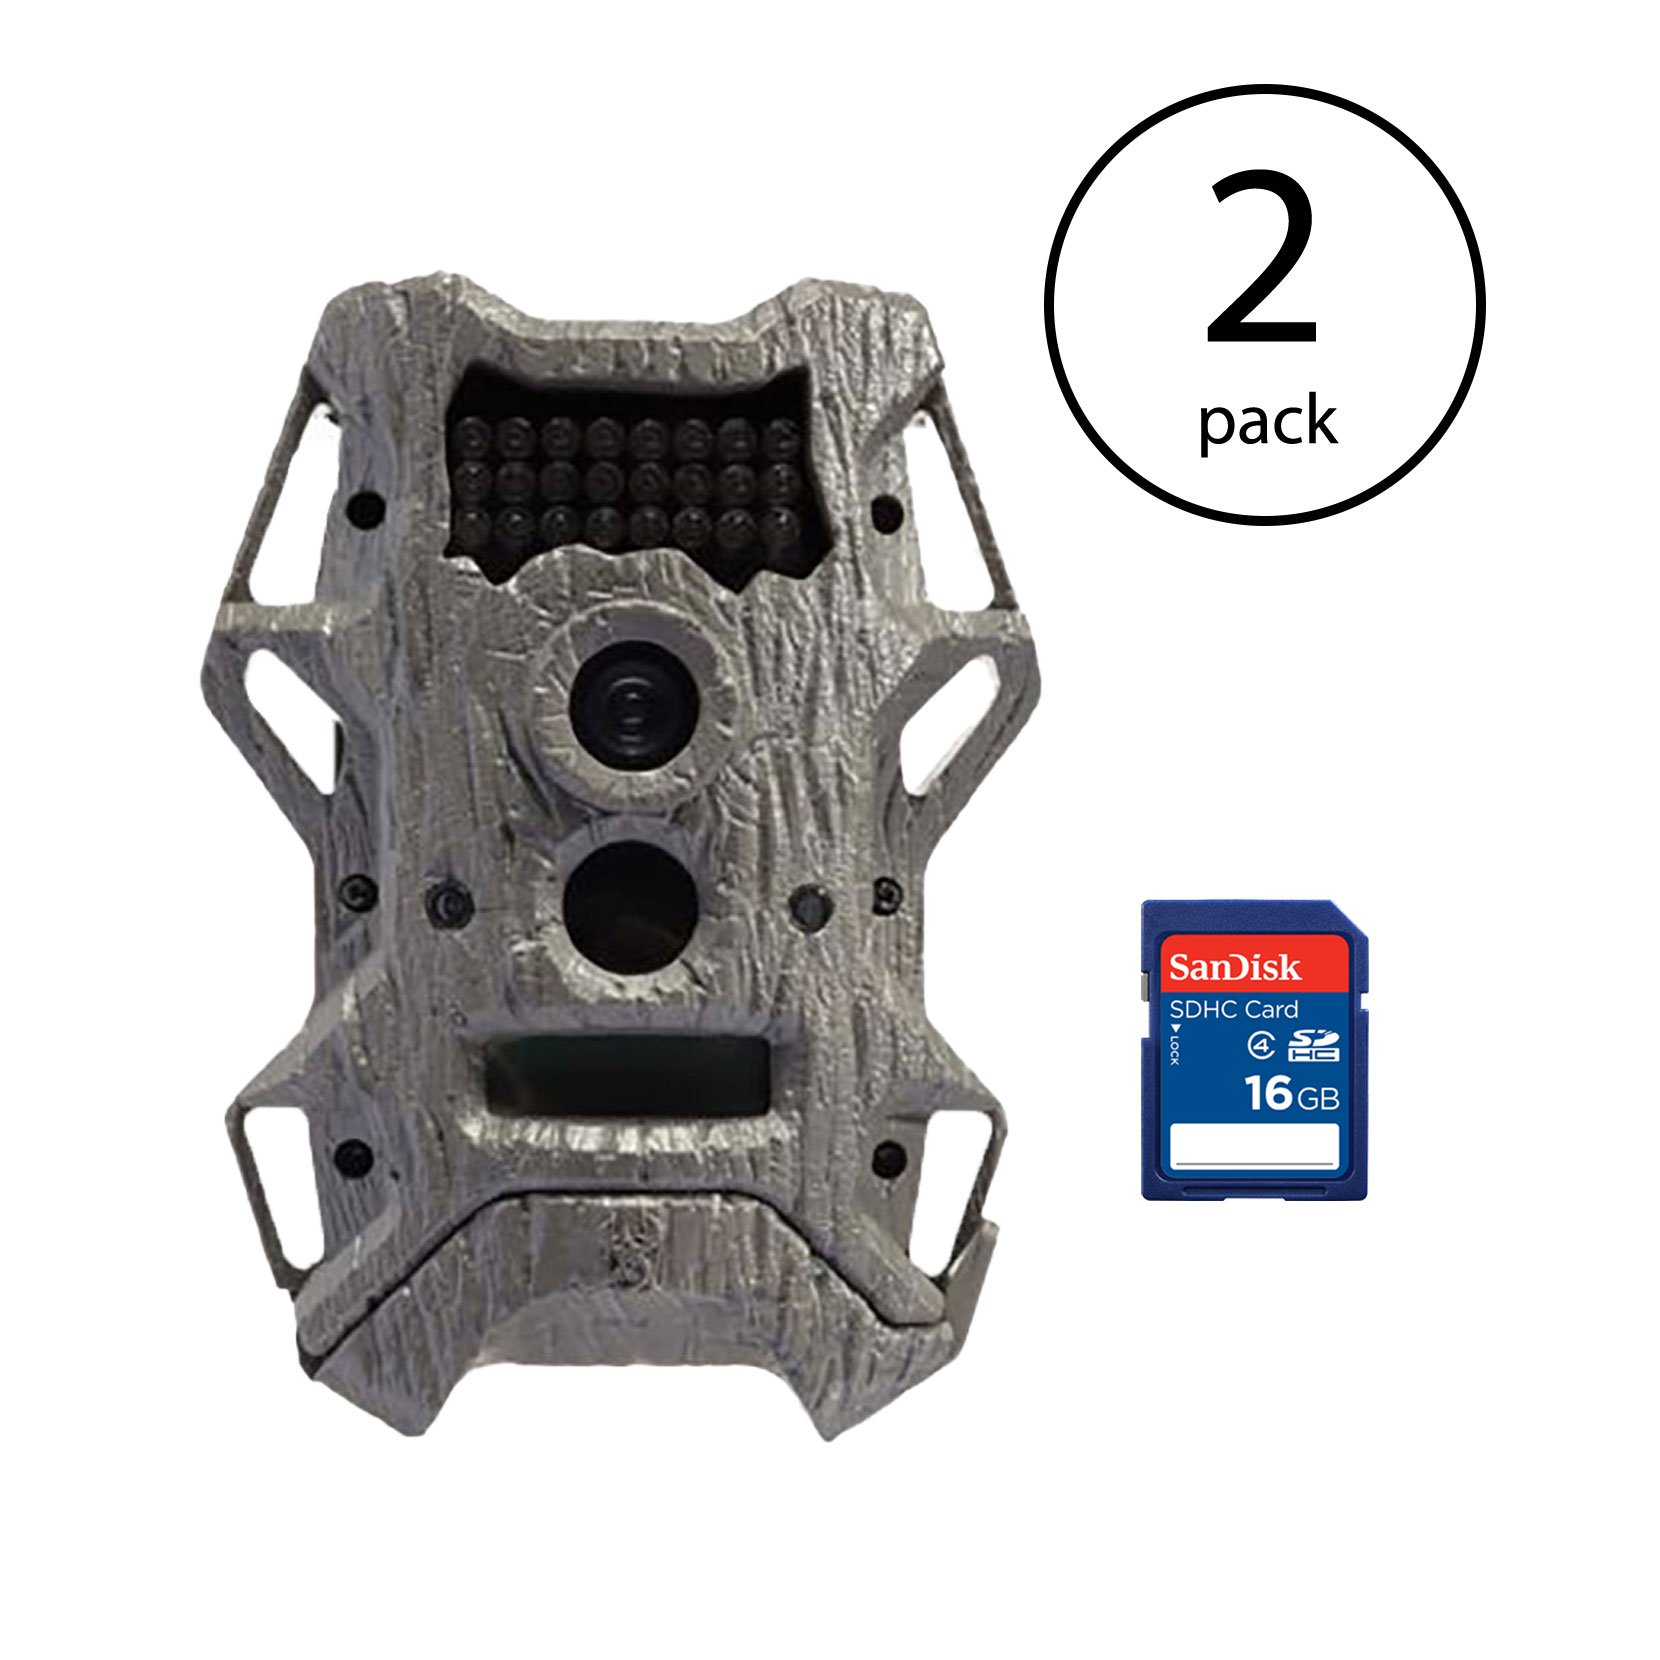 Wildgame Innovations Cloak Pro Rapid Trigger 12MP Game Camera, 2 Pack + SD Cards